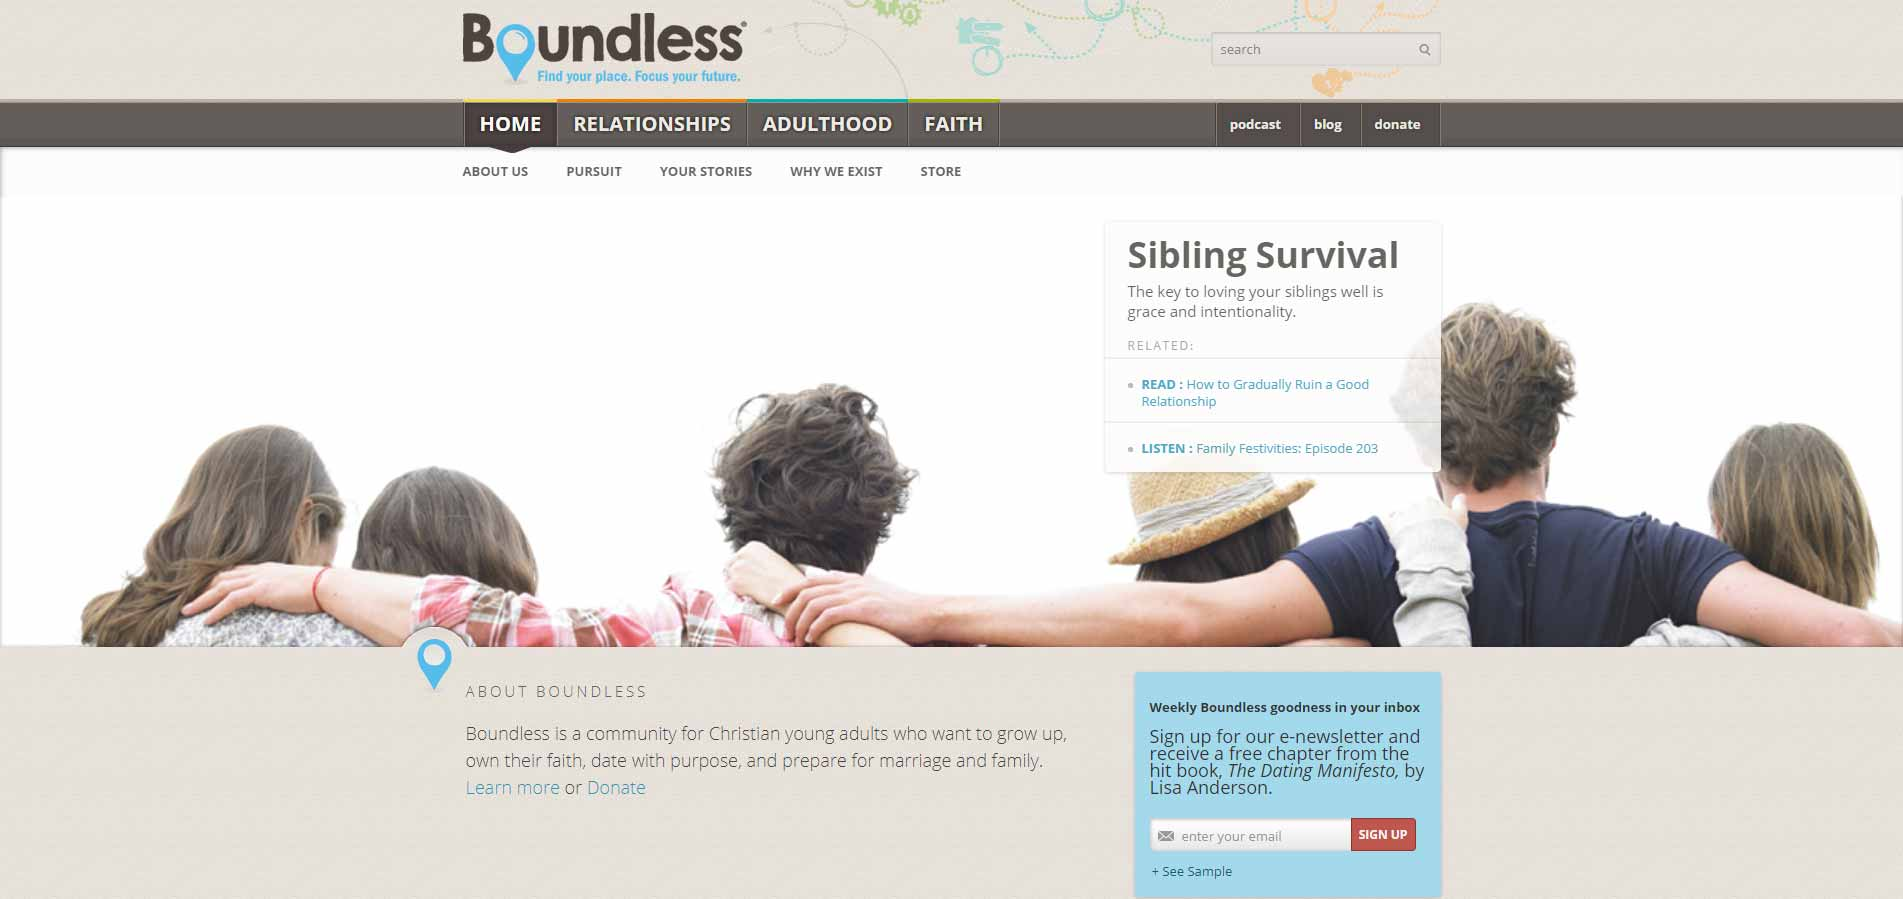 Boundless home page image for international dating site review